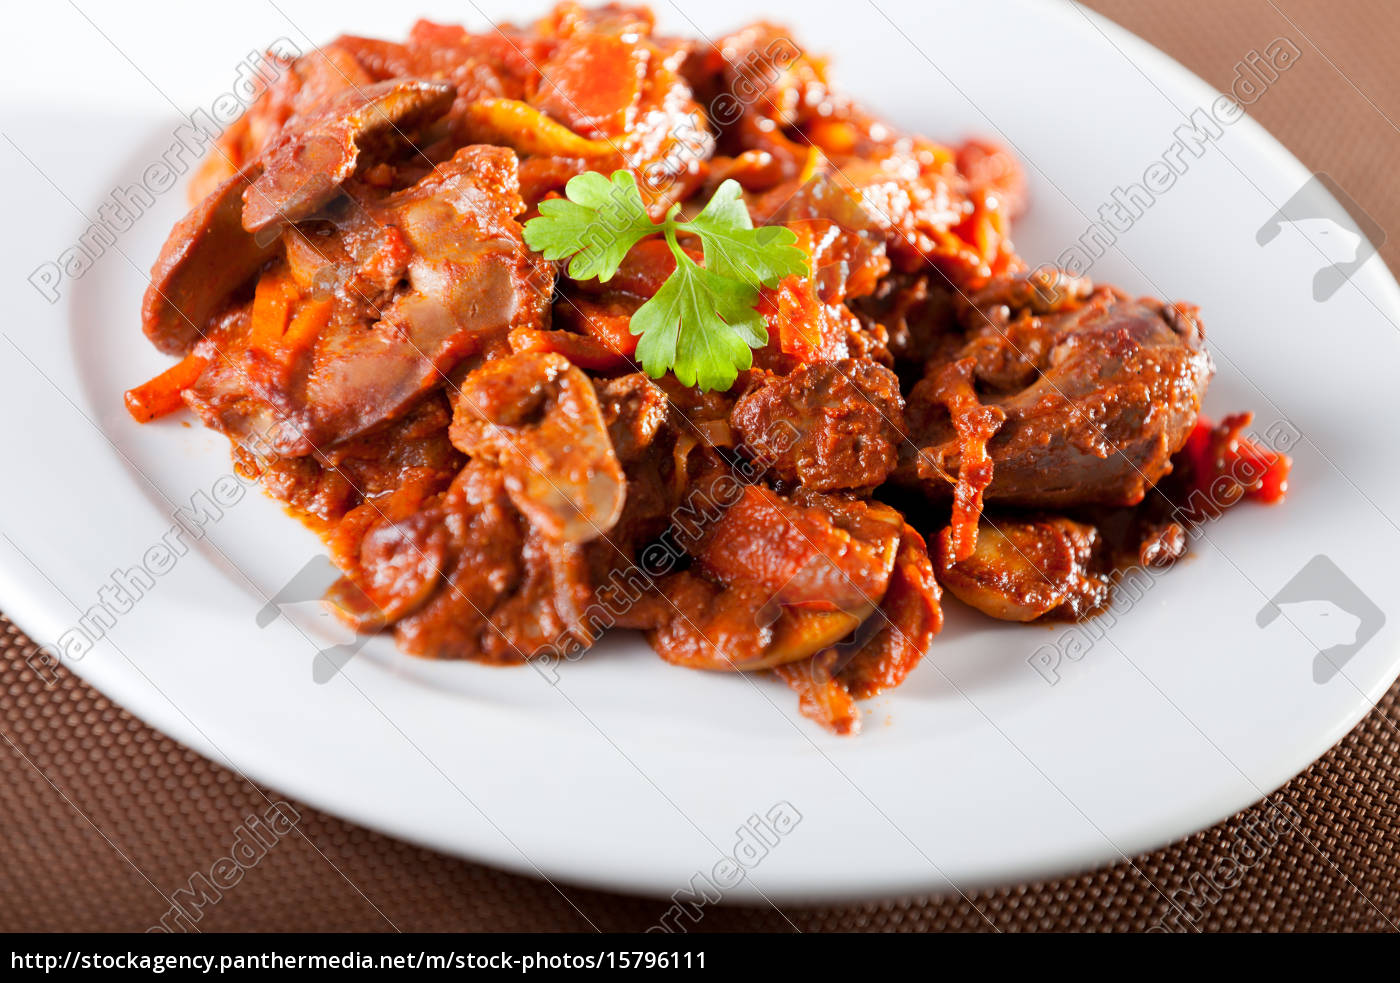 chicken, livers, with, tomato, sauce, chicken, livers - 15796111